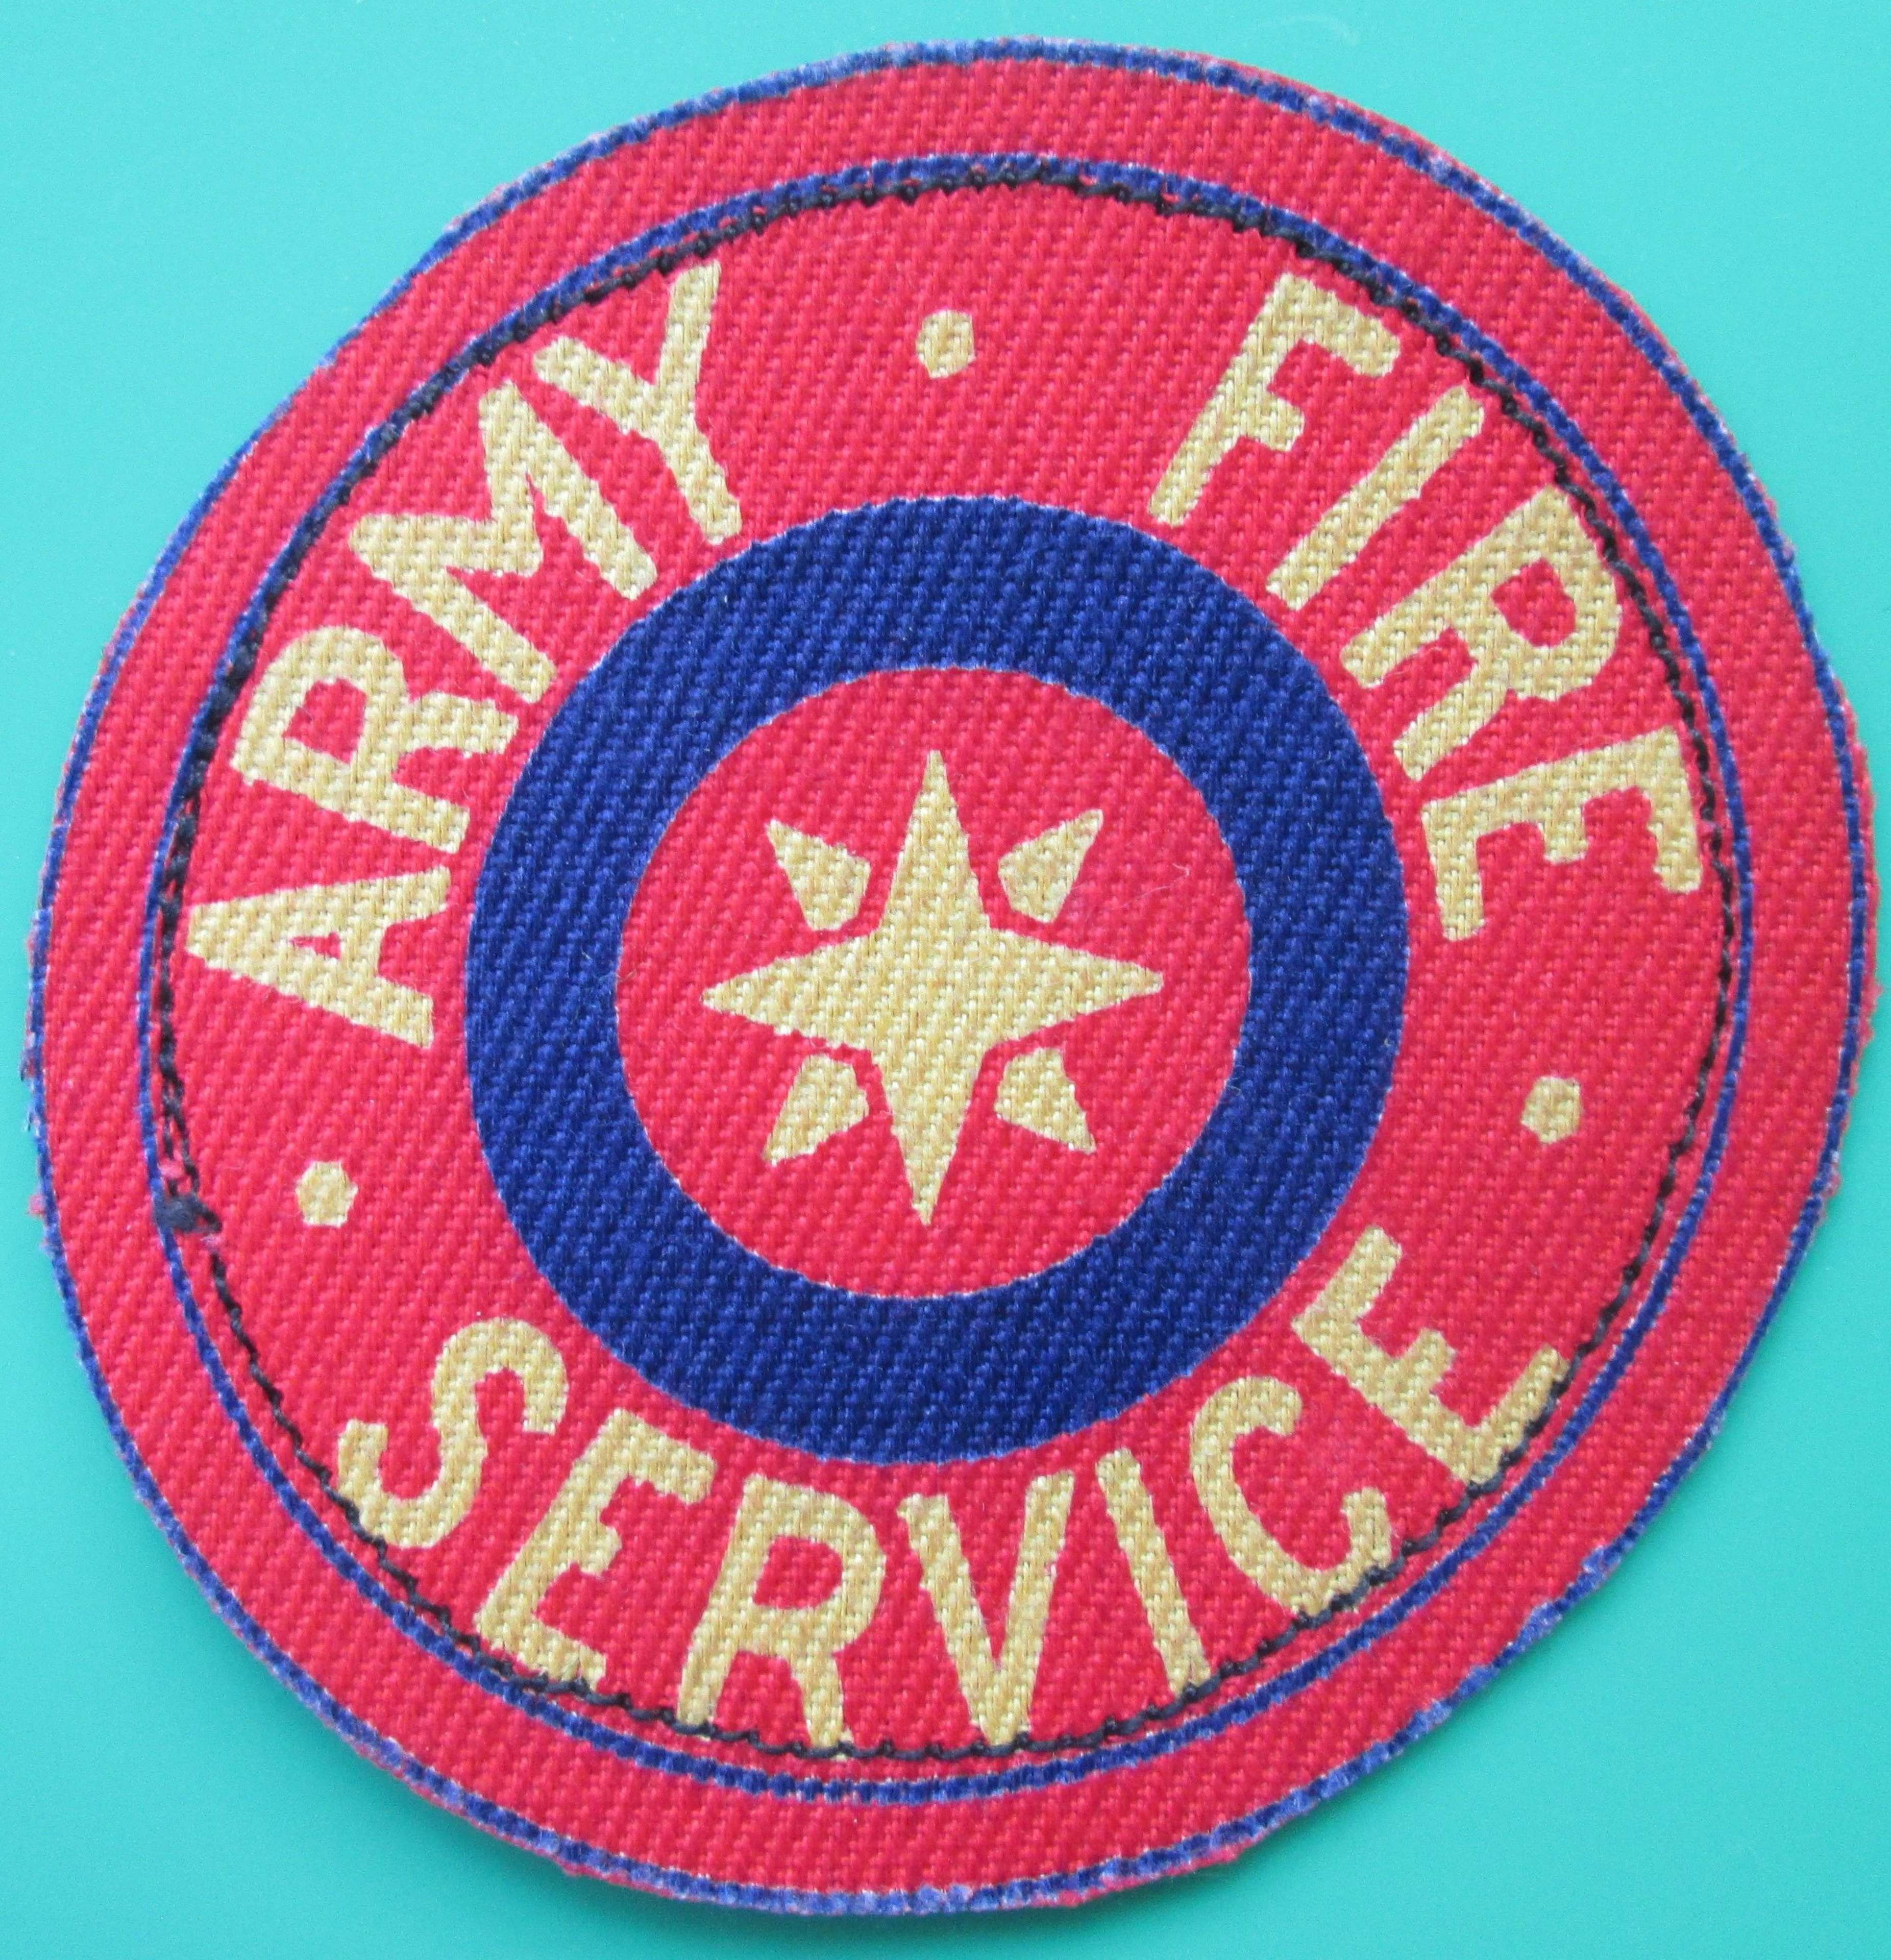 AN ARMY FIRE SERVICE PATCH